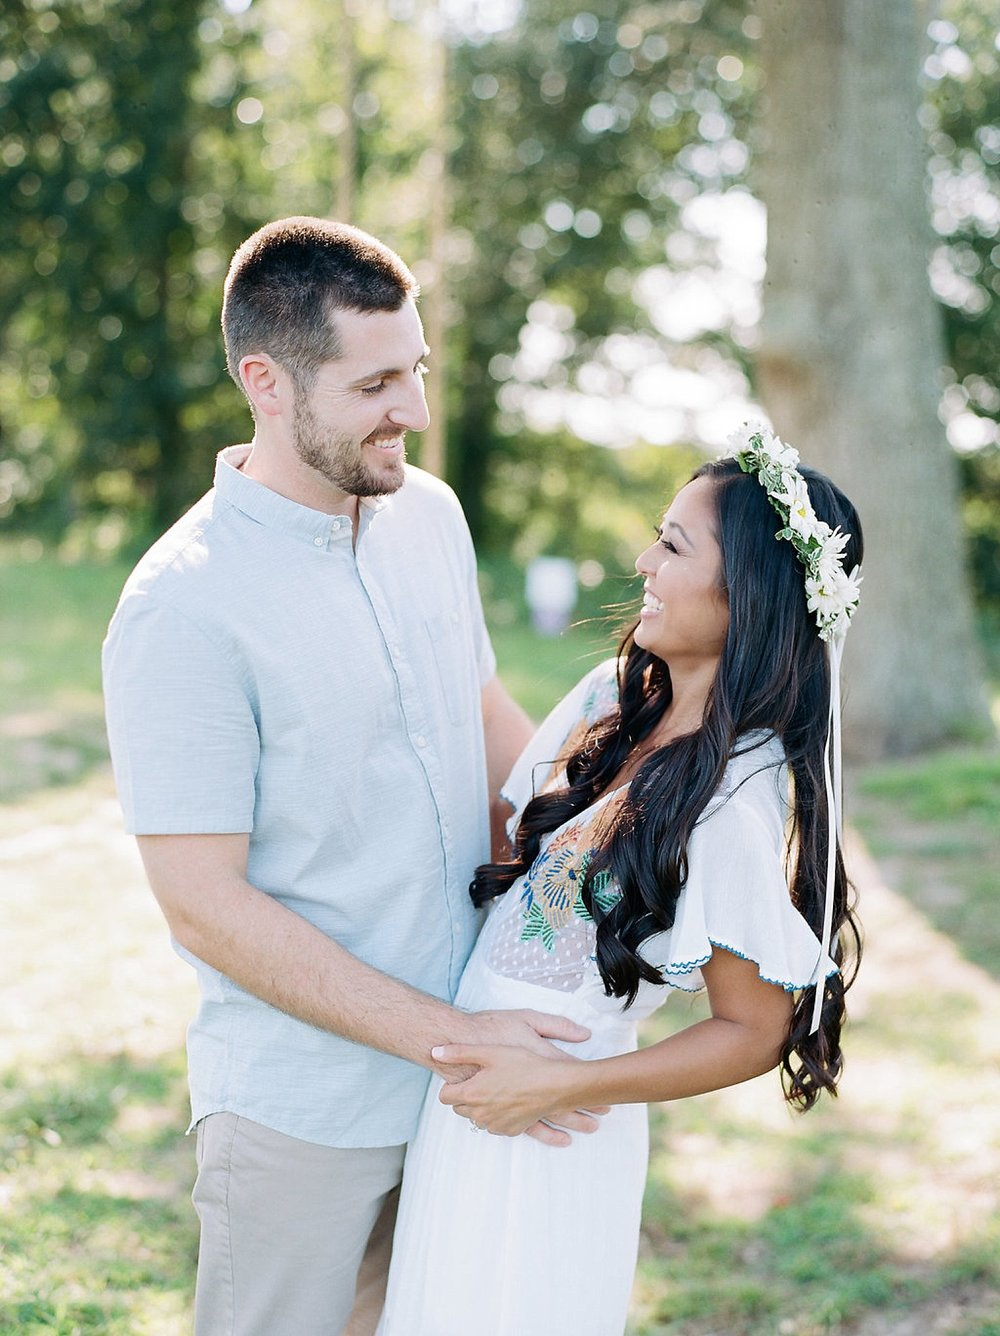 An Airy Summer Engagement Session at Willow Creek Winery in Cape May, NJ by Magdalena Studios_0001.jpg